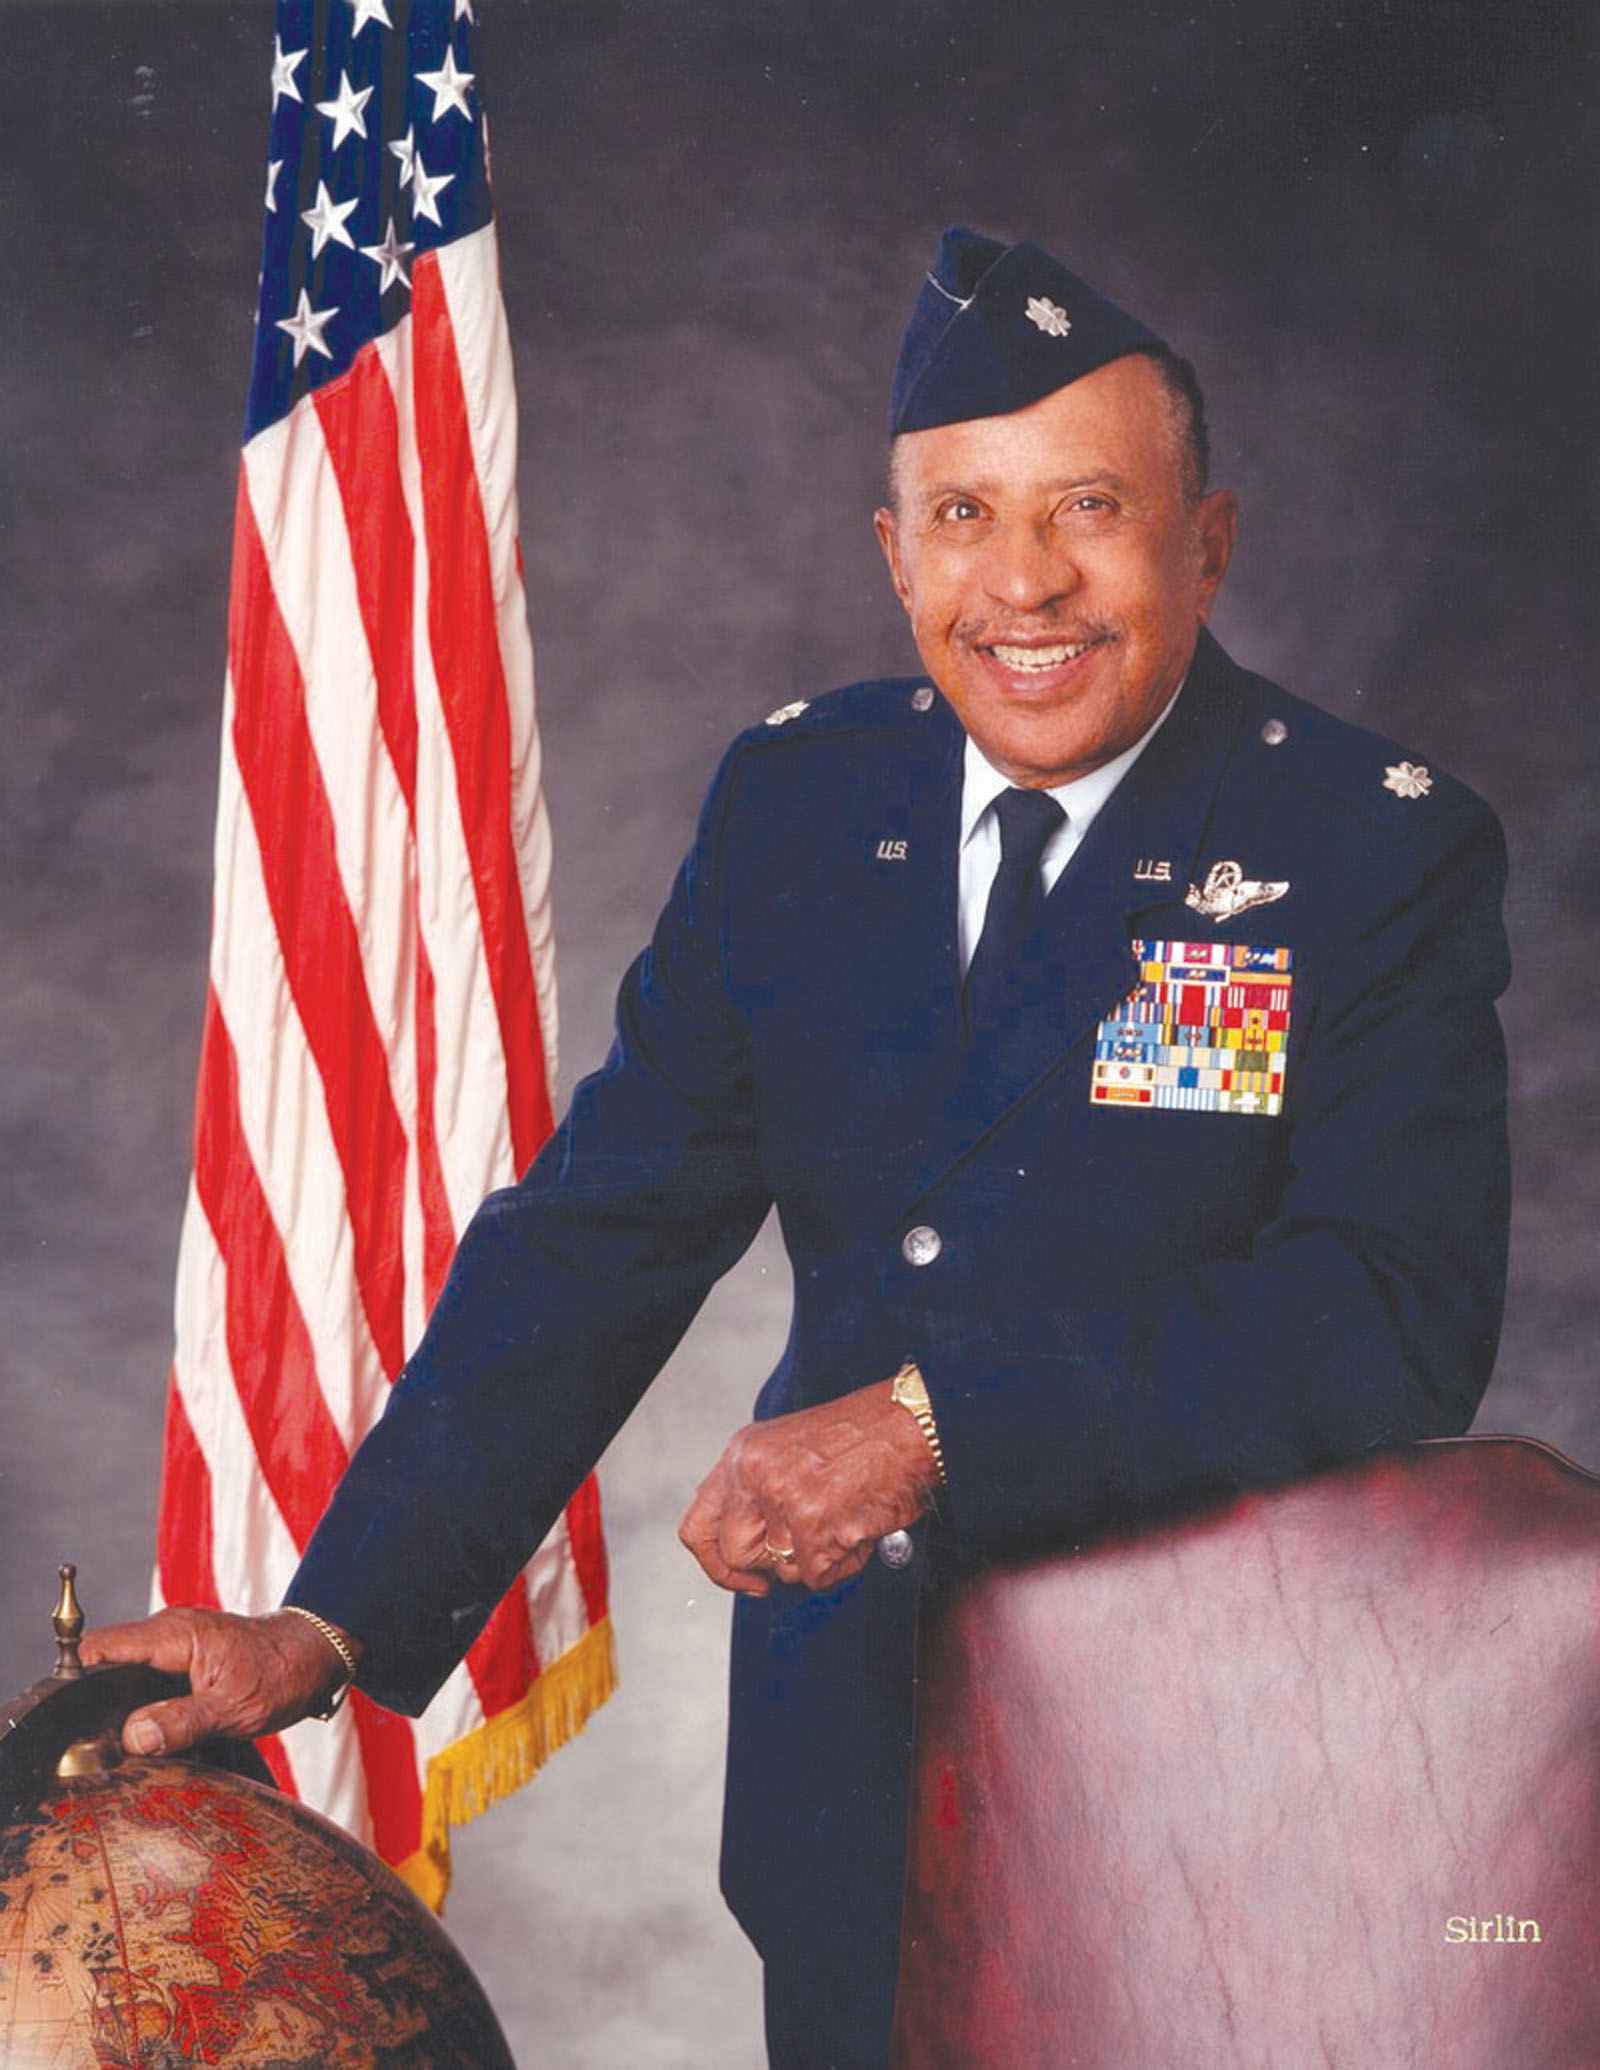 Lt. Col. James C. Warren: Tuskegee Airman, American Hero